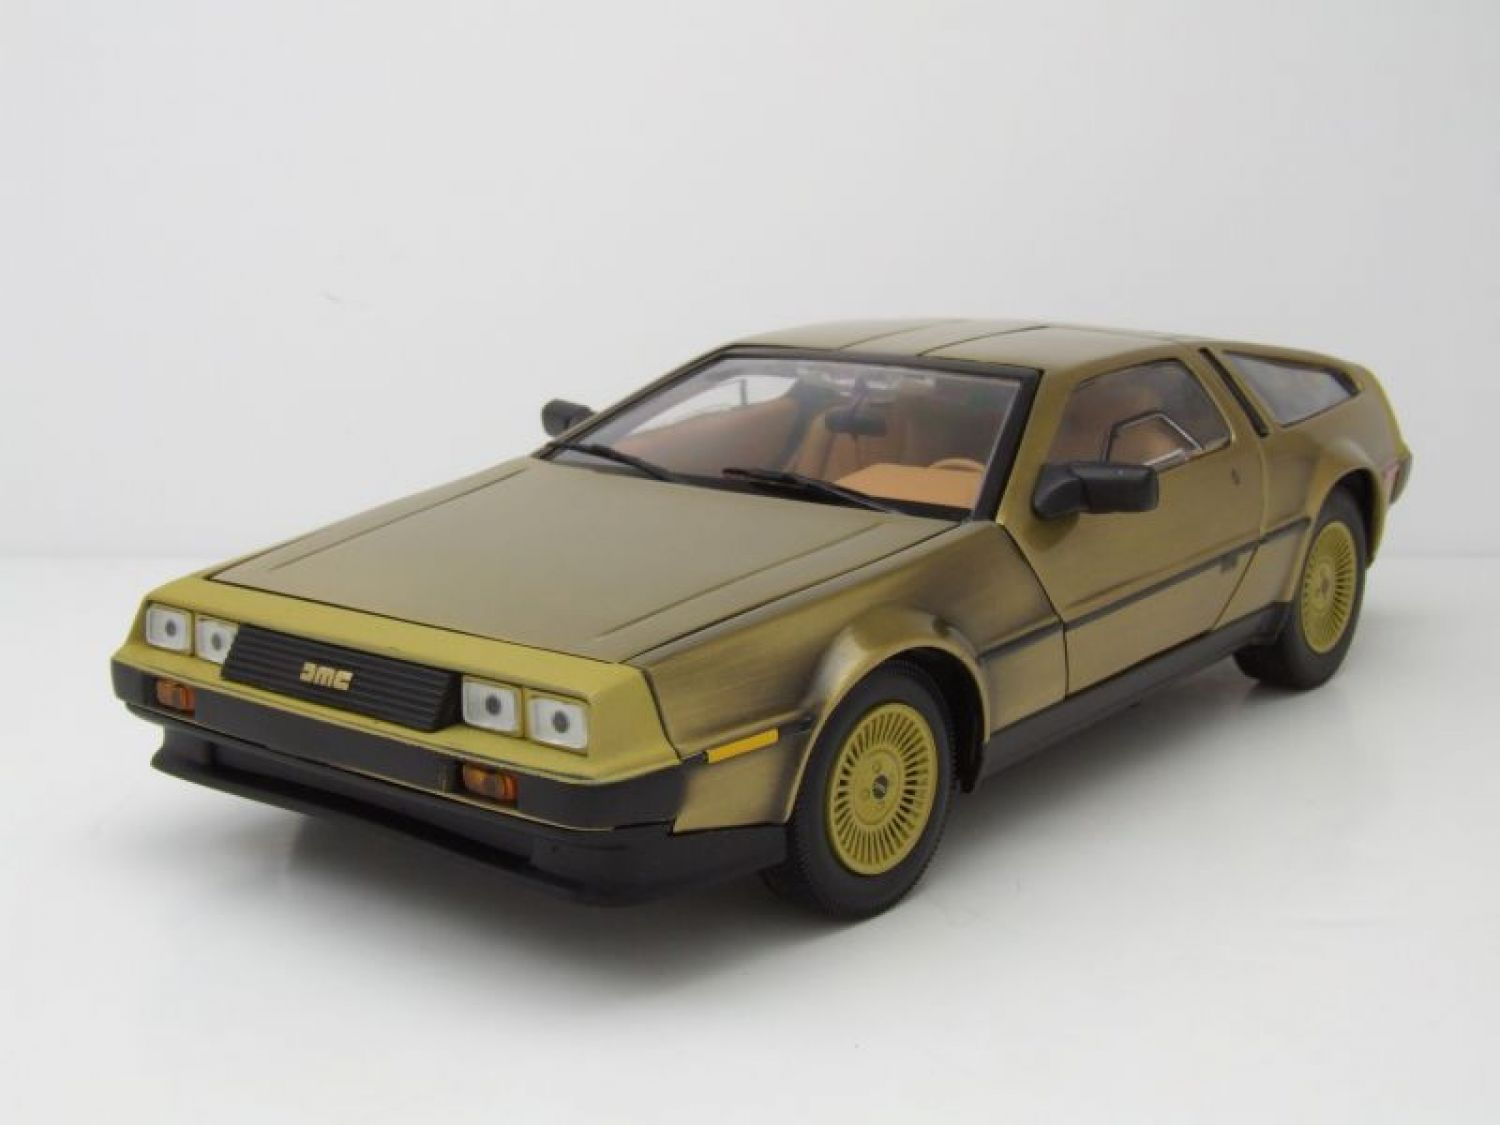 de lorean dmc 12 coupe 1981 gold modellauto 1 18 sun. Black Bedroom Furniture Sets. Home Design Ideas